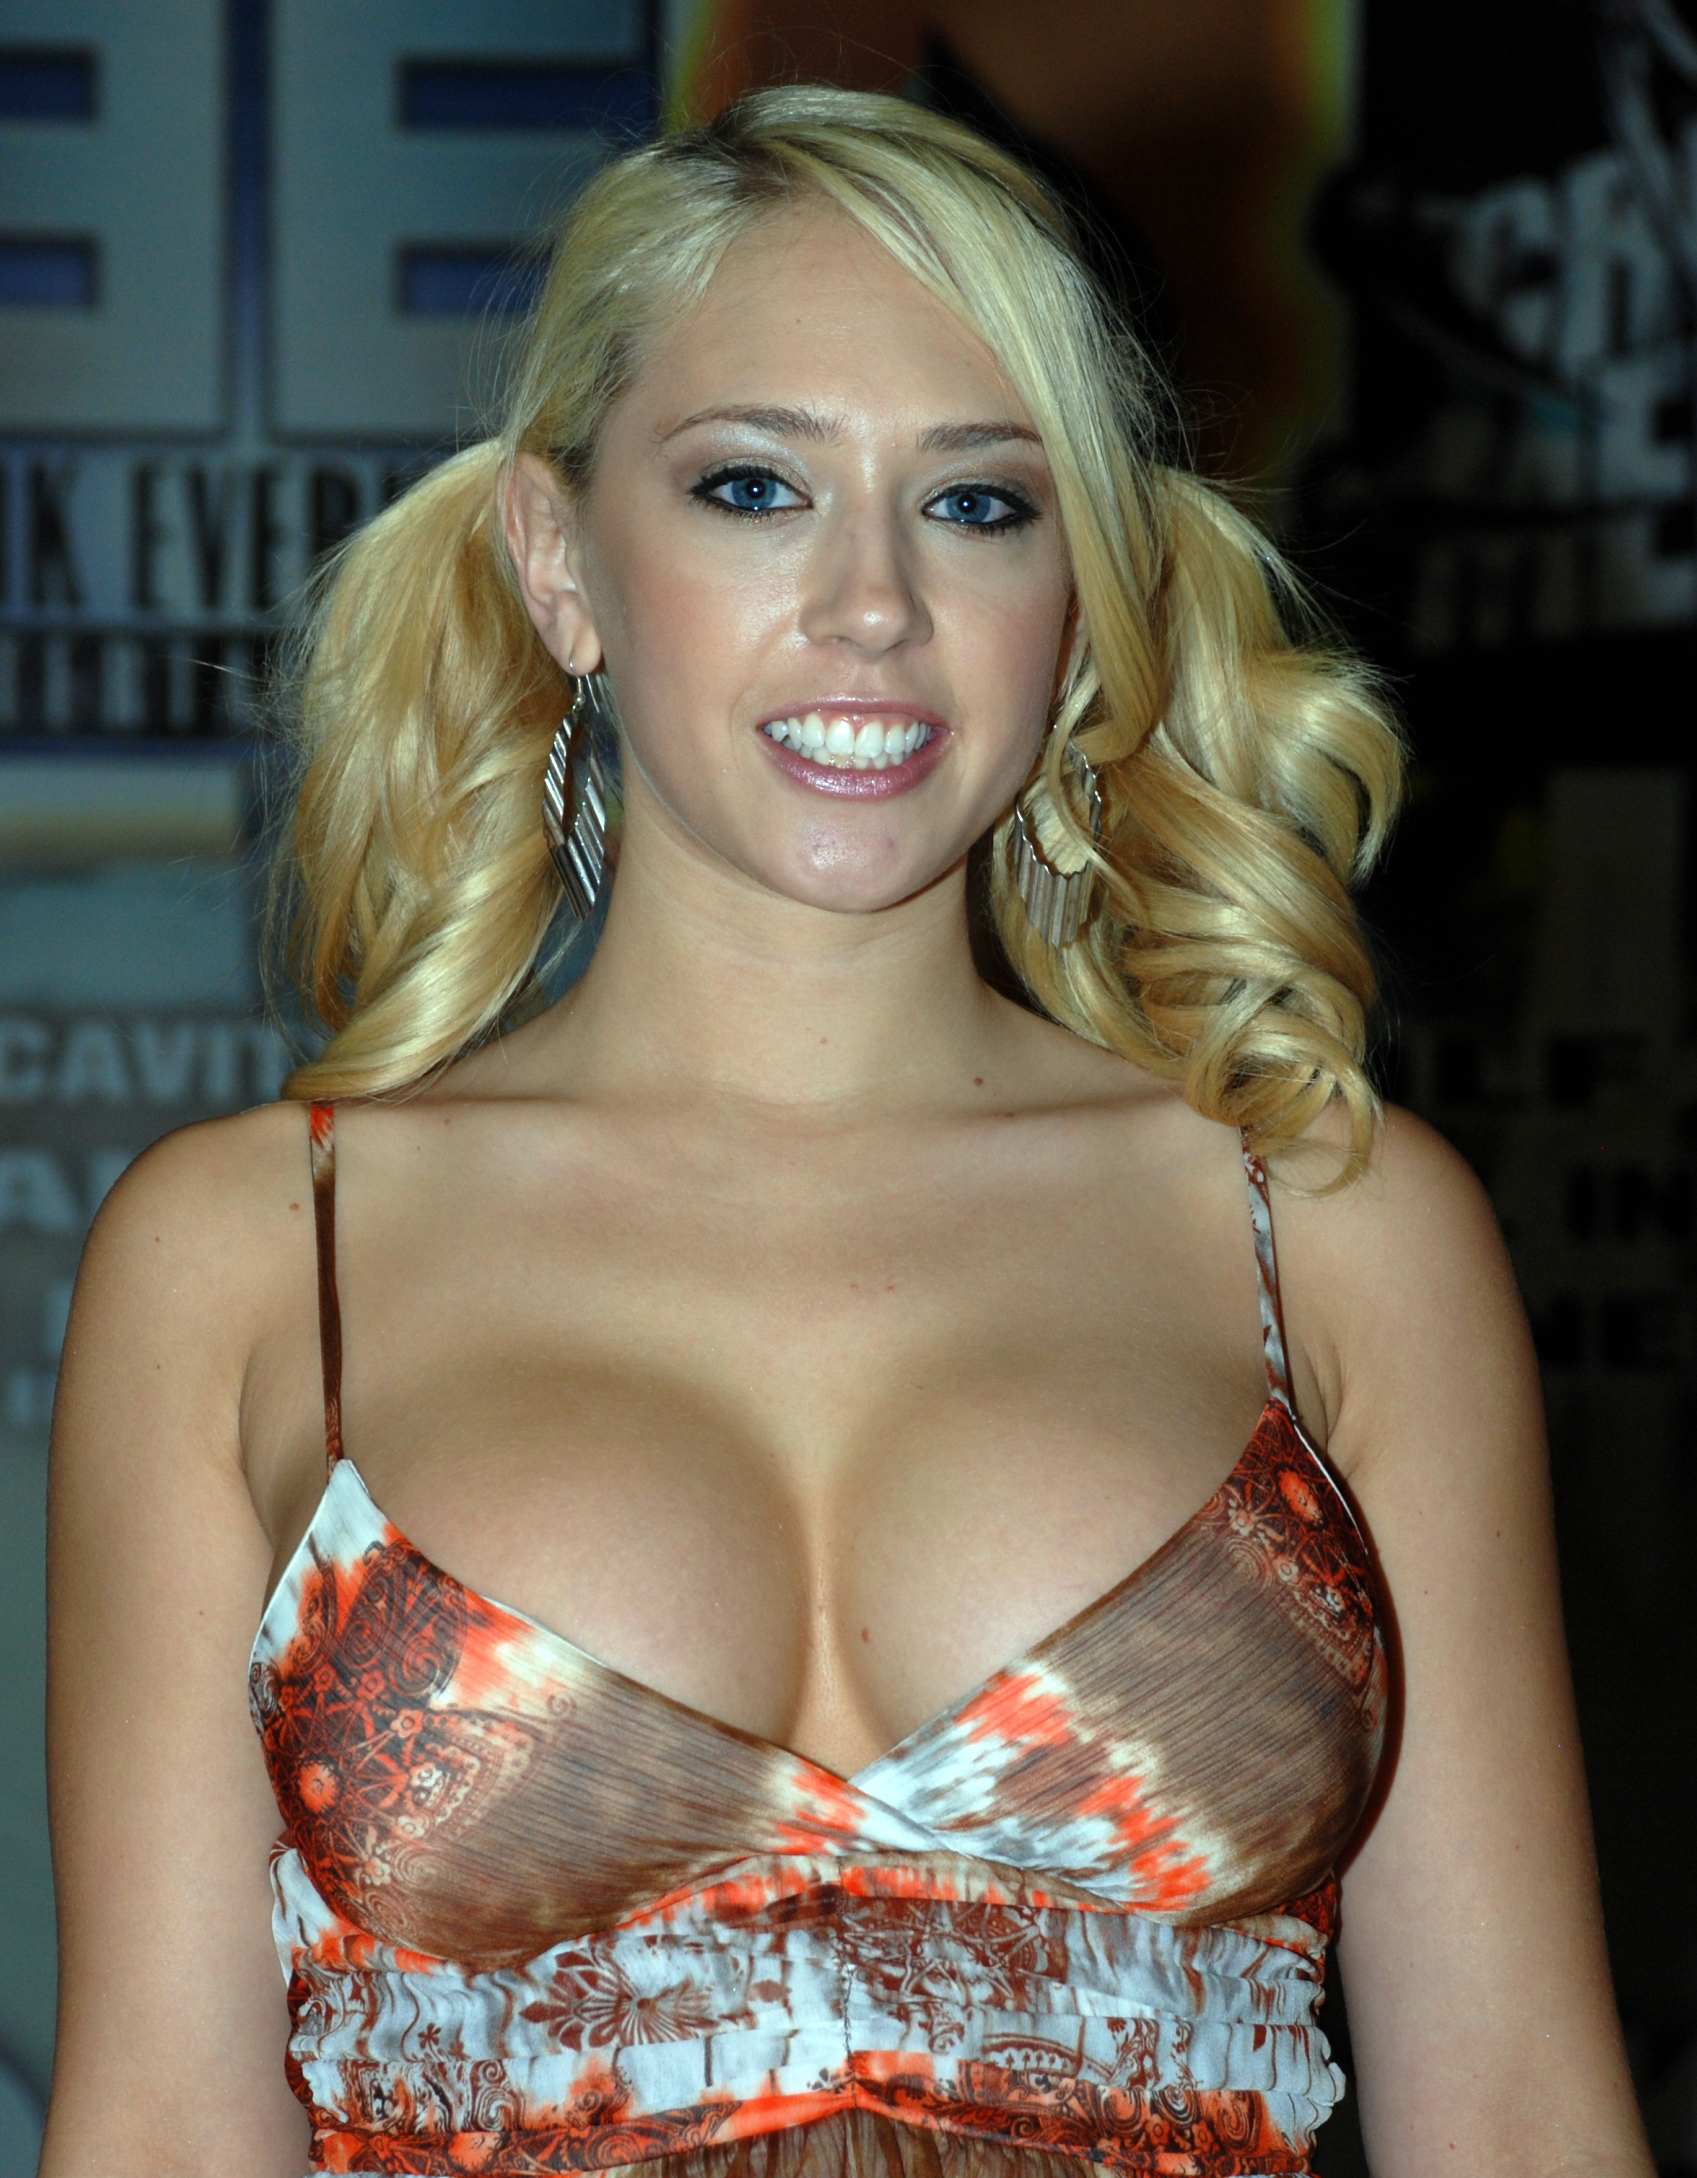 Kagney Linn Karter naked (52 photos), photos Erotica, Instagram, cleavage 2019